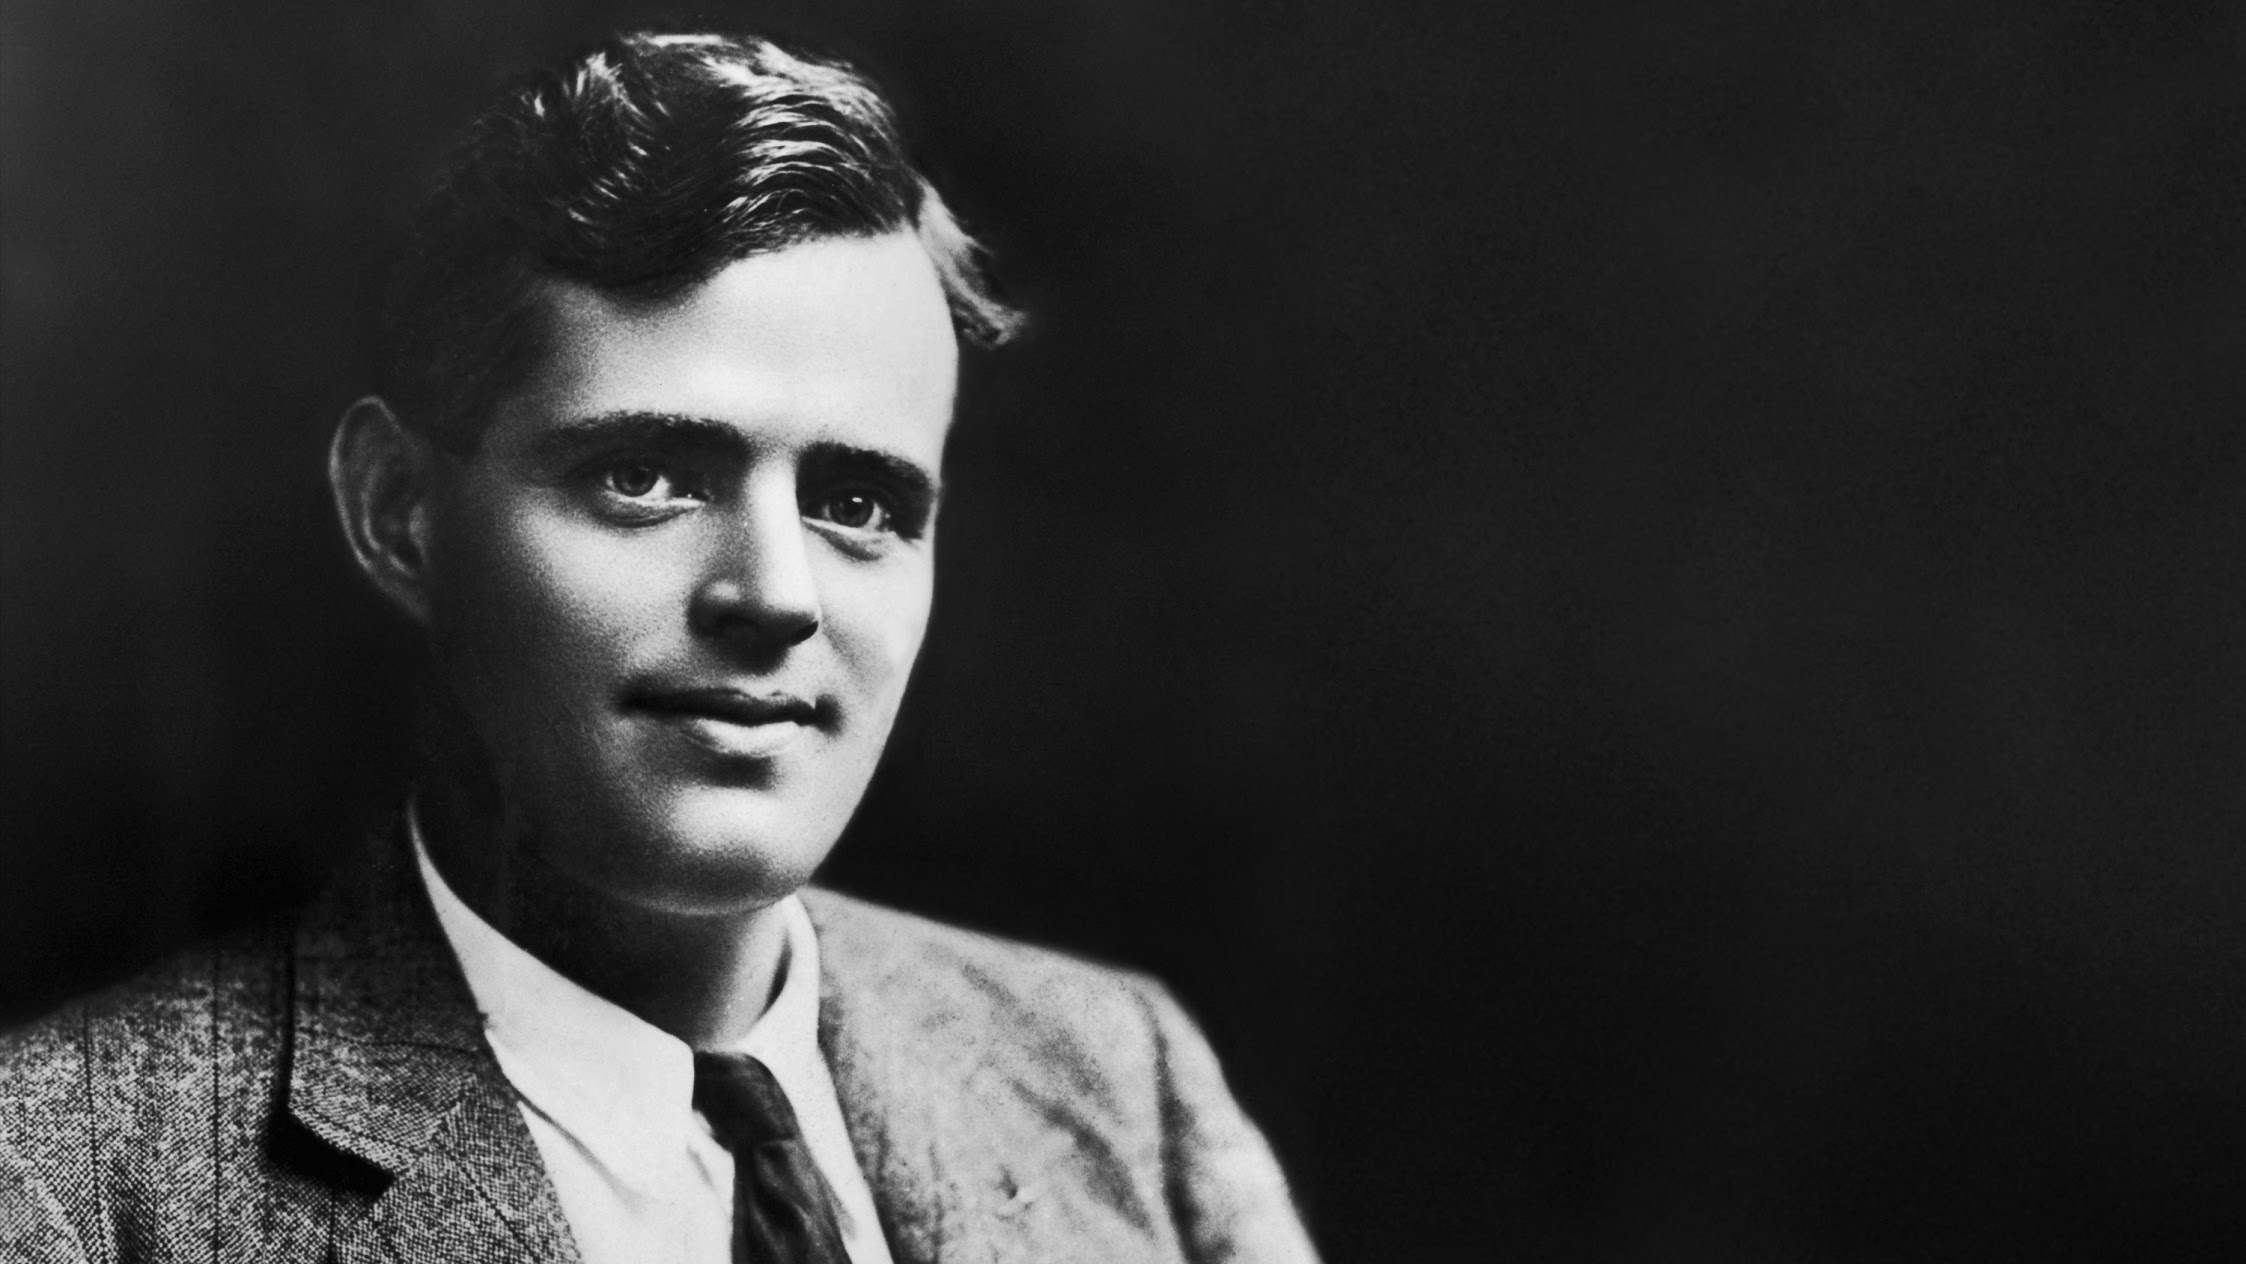 https://www.chroniquesdurenard.fr/wp-content/uploads/2016/04/Jack-London-portrait.jpg